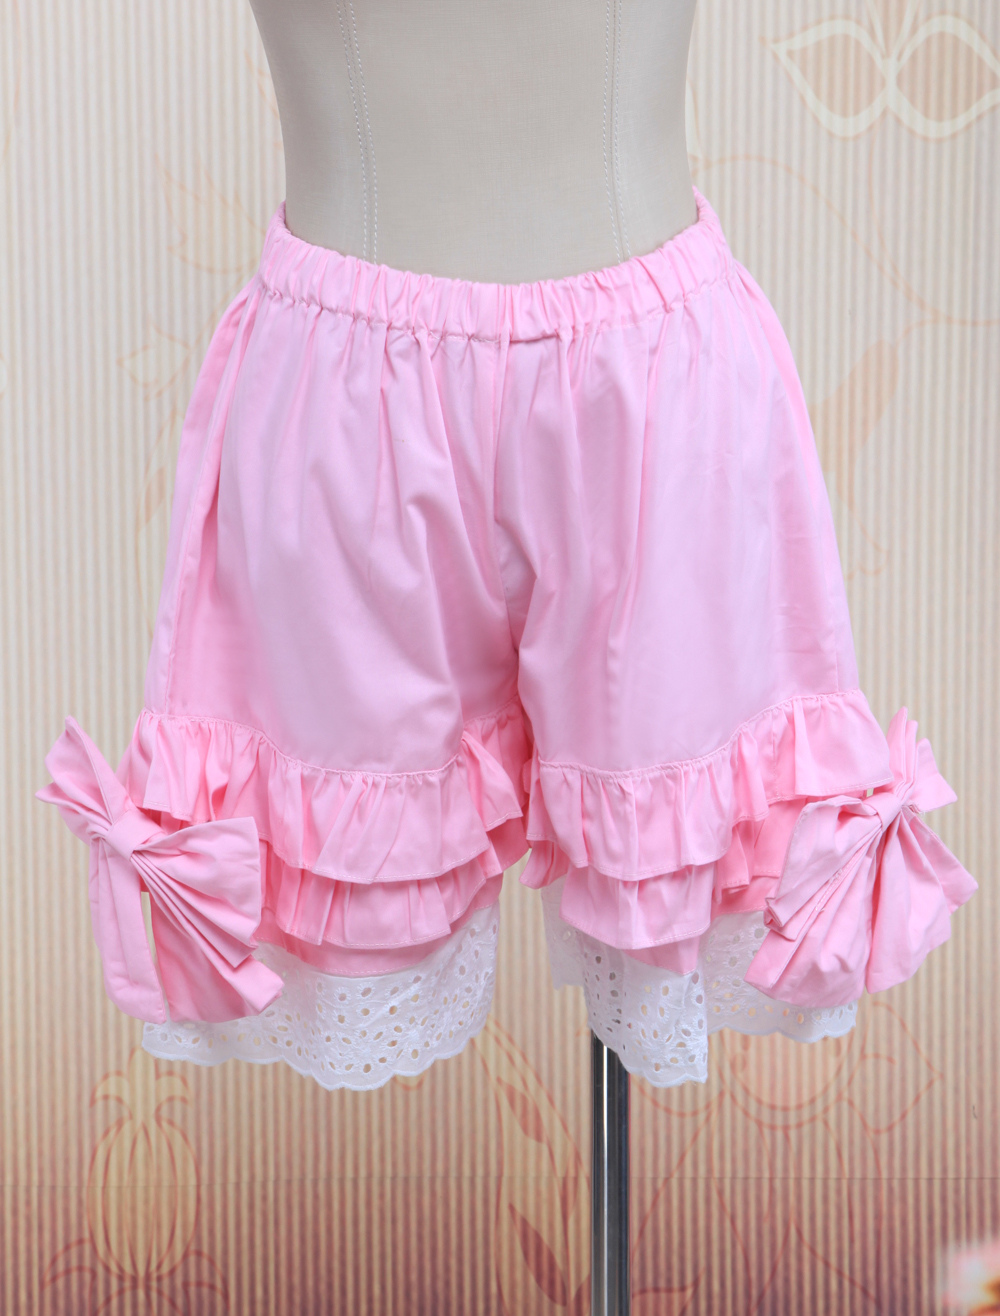 Cotton Pink Lace Lolita Bloomers $14.99 AT vintagedancer.com